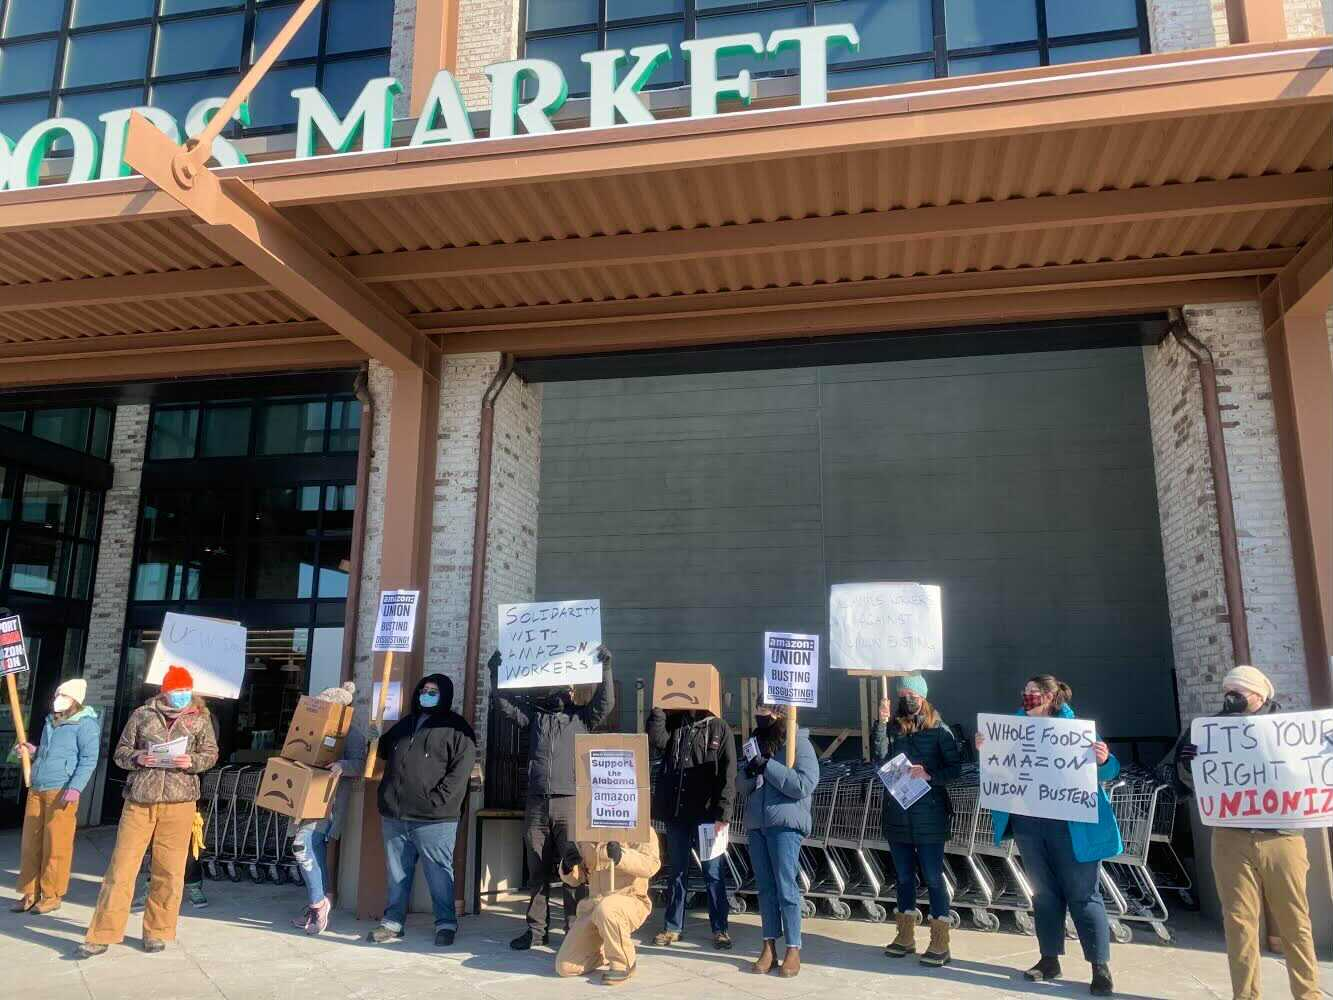 Lexington-Kentucky-Amazon-workers-support-protest-022021-1, Black Workers Matter! Nationwide protests supporting Amazon workers in Alabama from the Bay to Harlem, National News & Views Photo Gallery